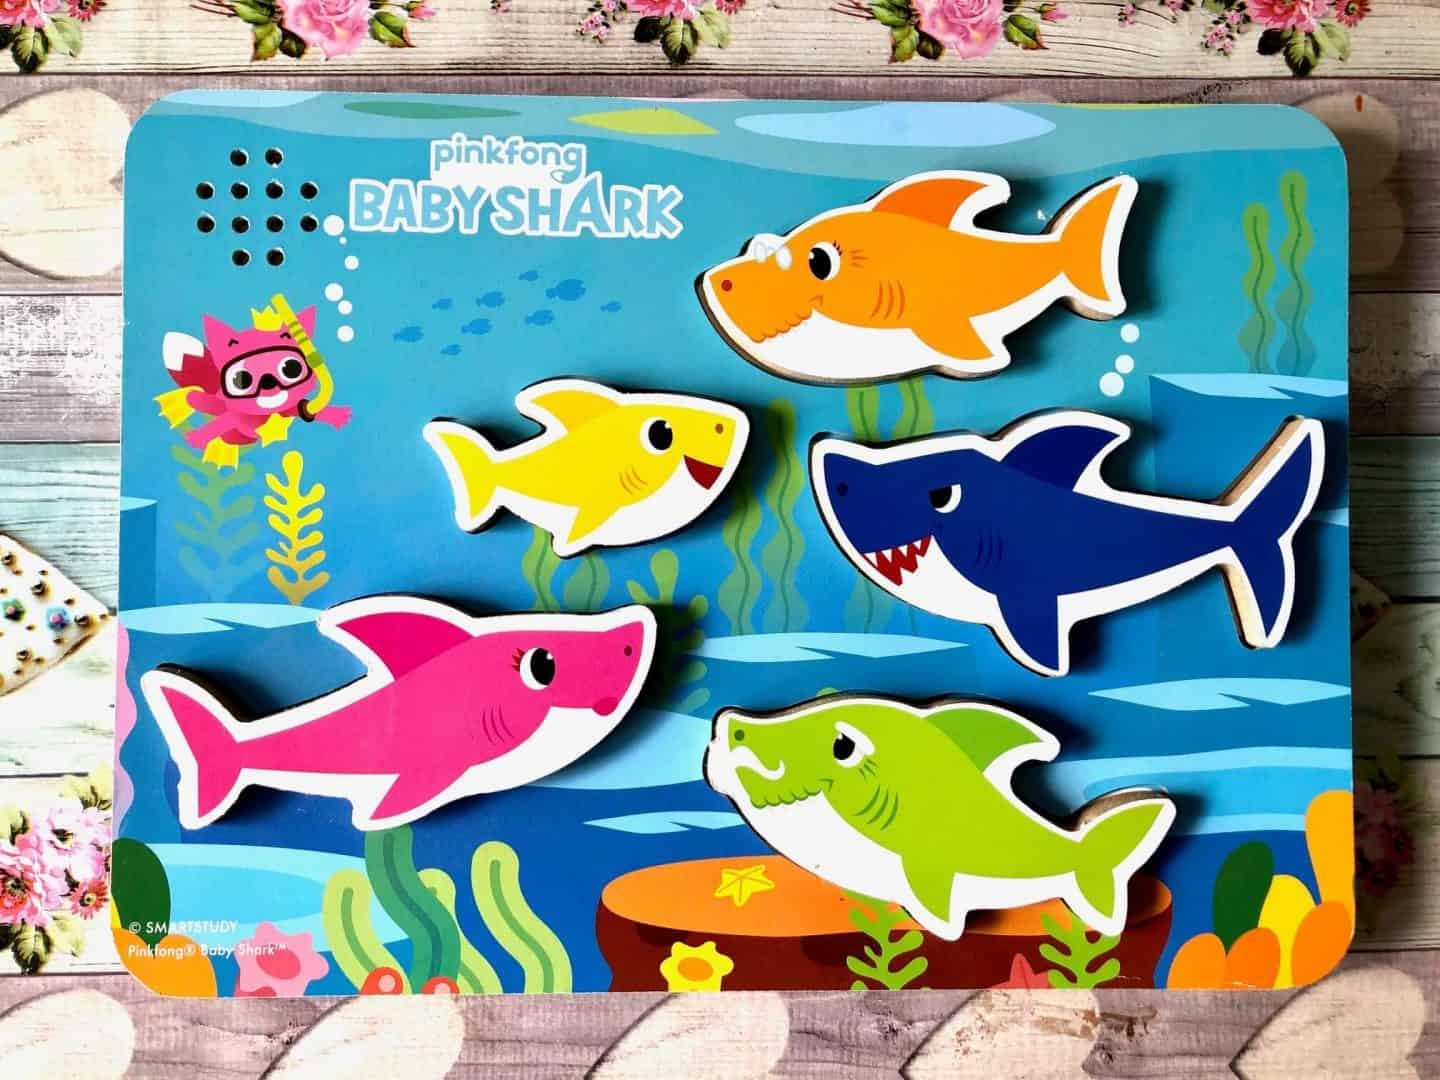 pinkfong baby shark toys